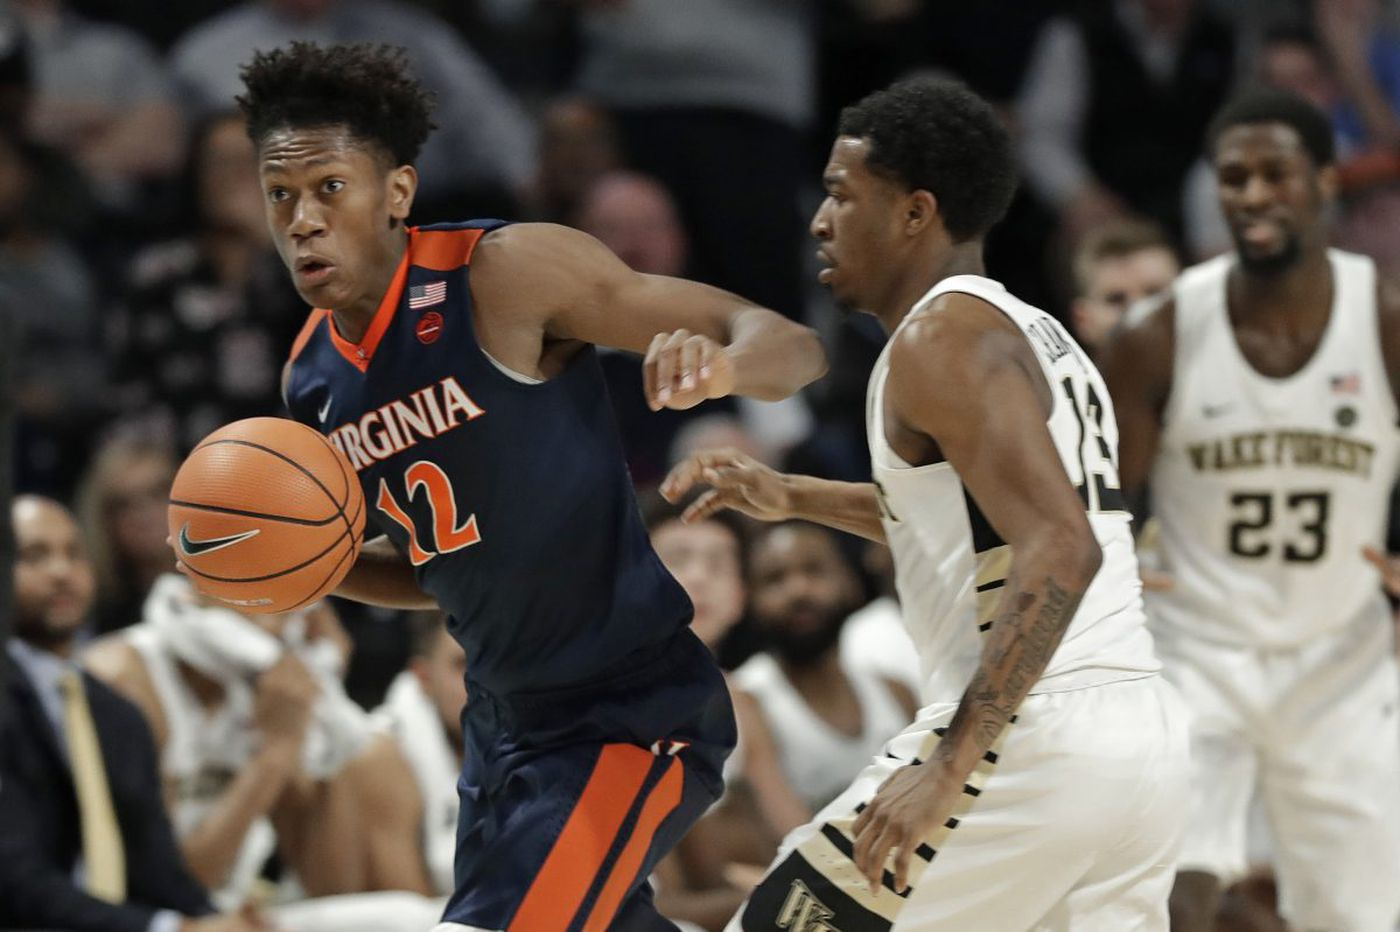 De'Andre Hunter showing a lot of skills (and patience) at Virginia